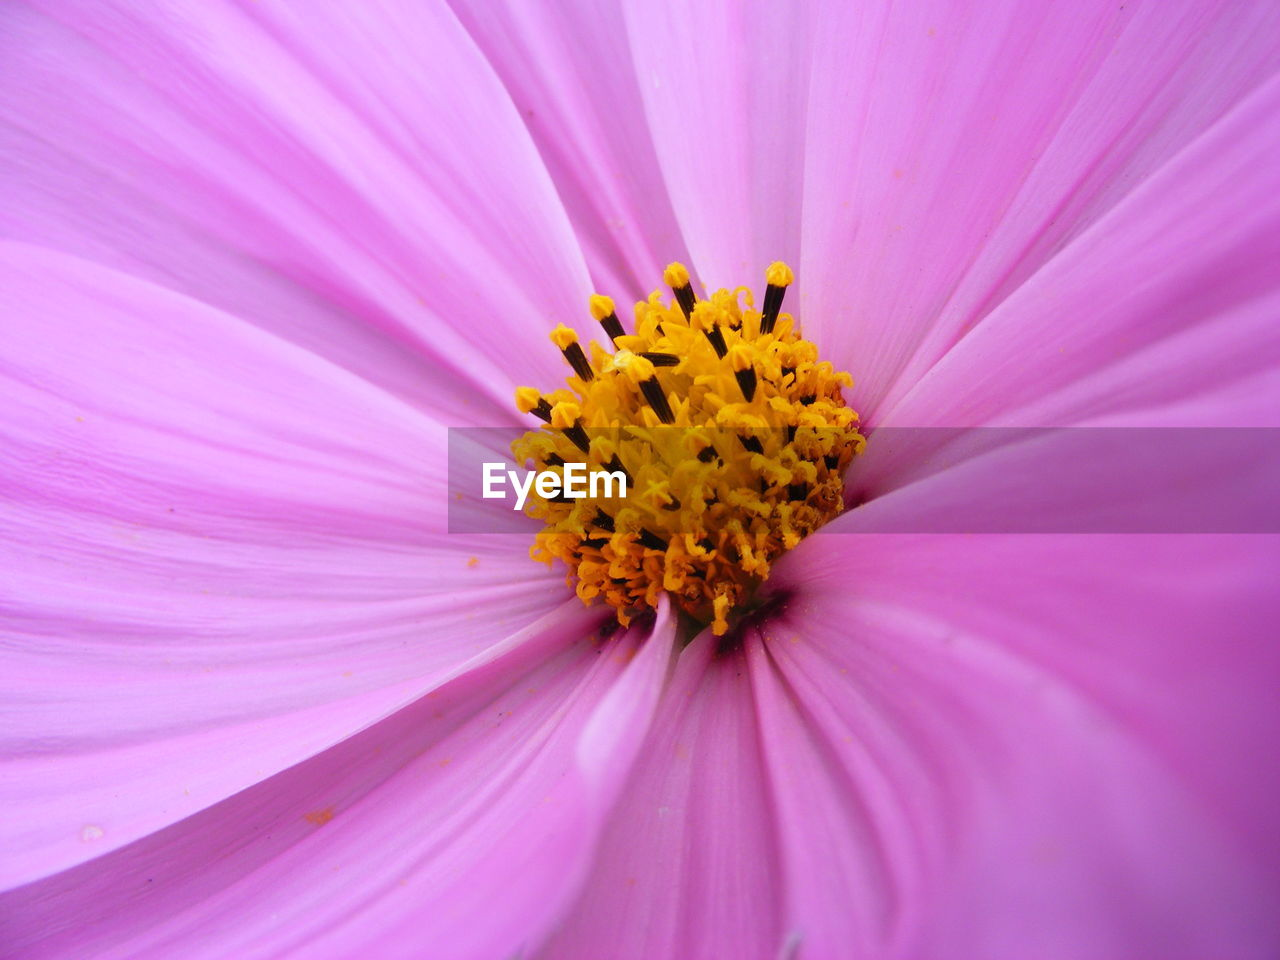 flower, petal, beauty in nature, yellow, fragility, flower head, nature, freshness, pollen, pink color, no people, growth, purple, plant, close-up, blooming, cosmos flower, backgrounds, full frame, day, outdoors